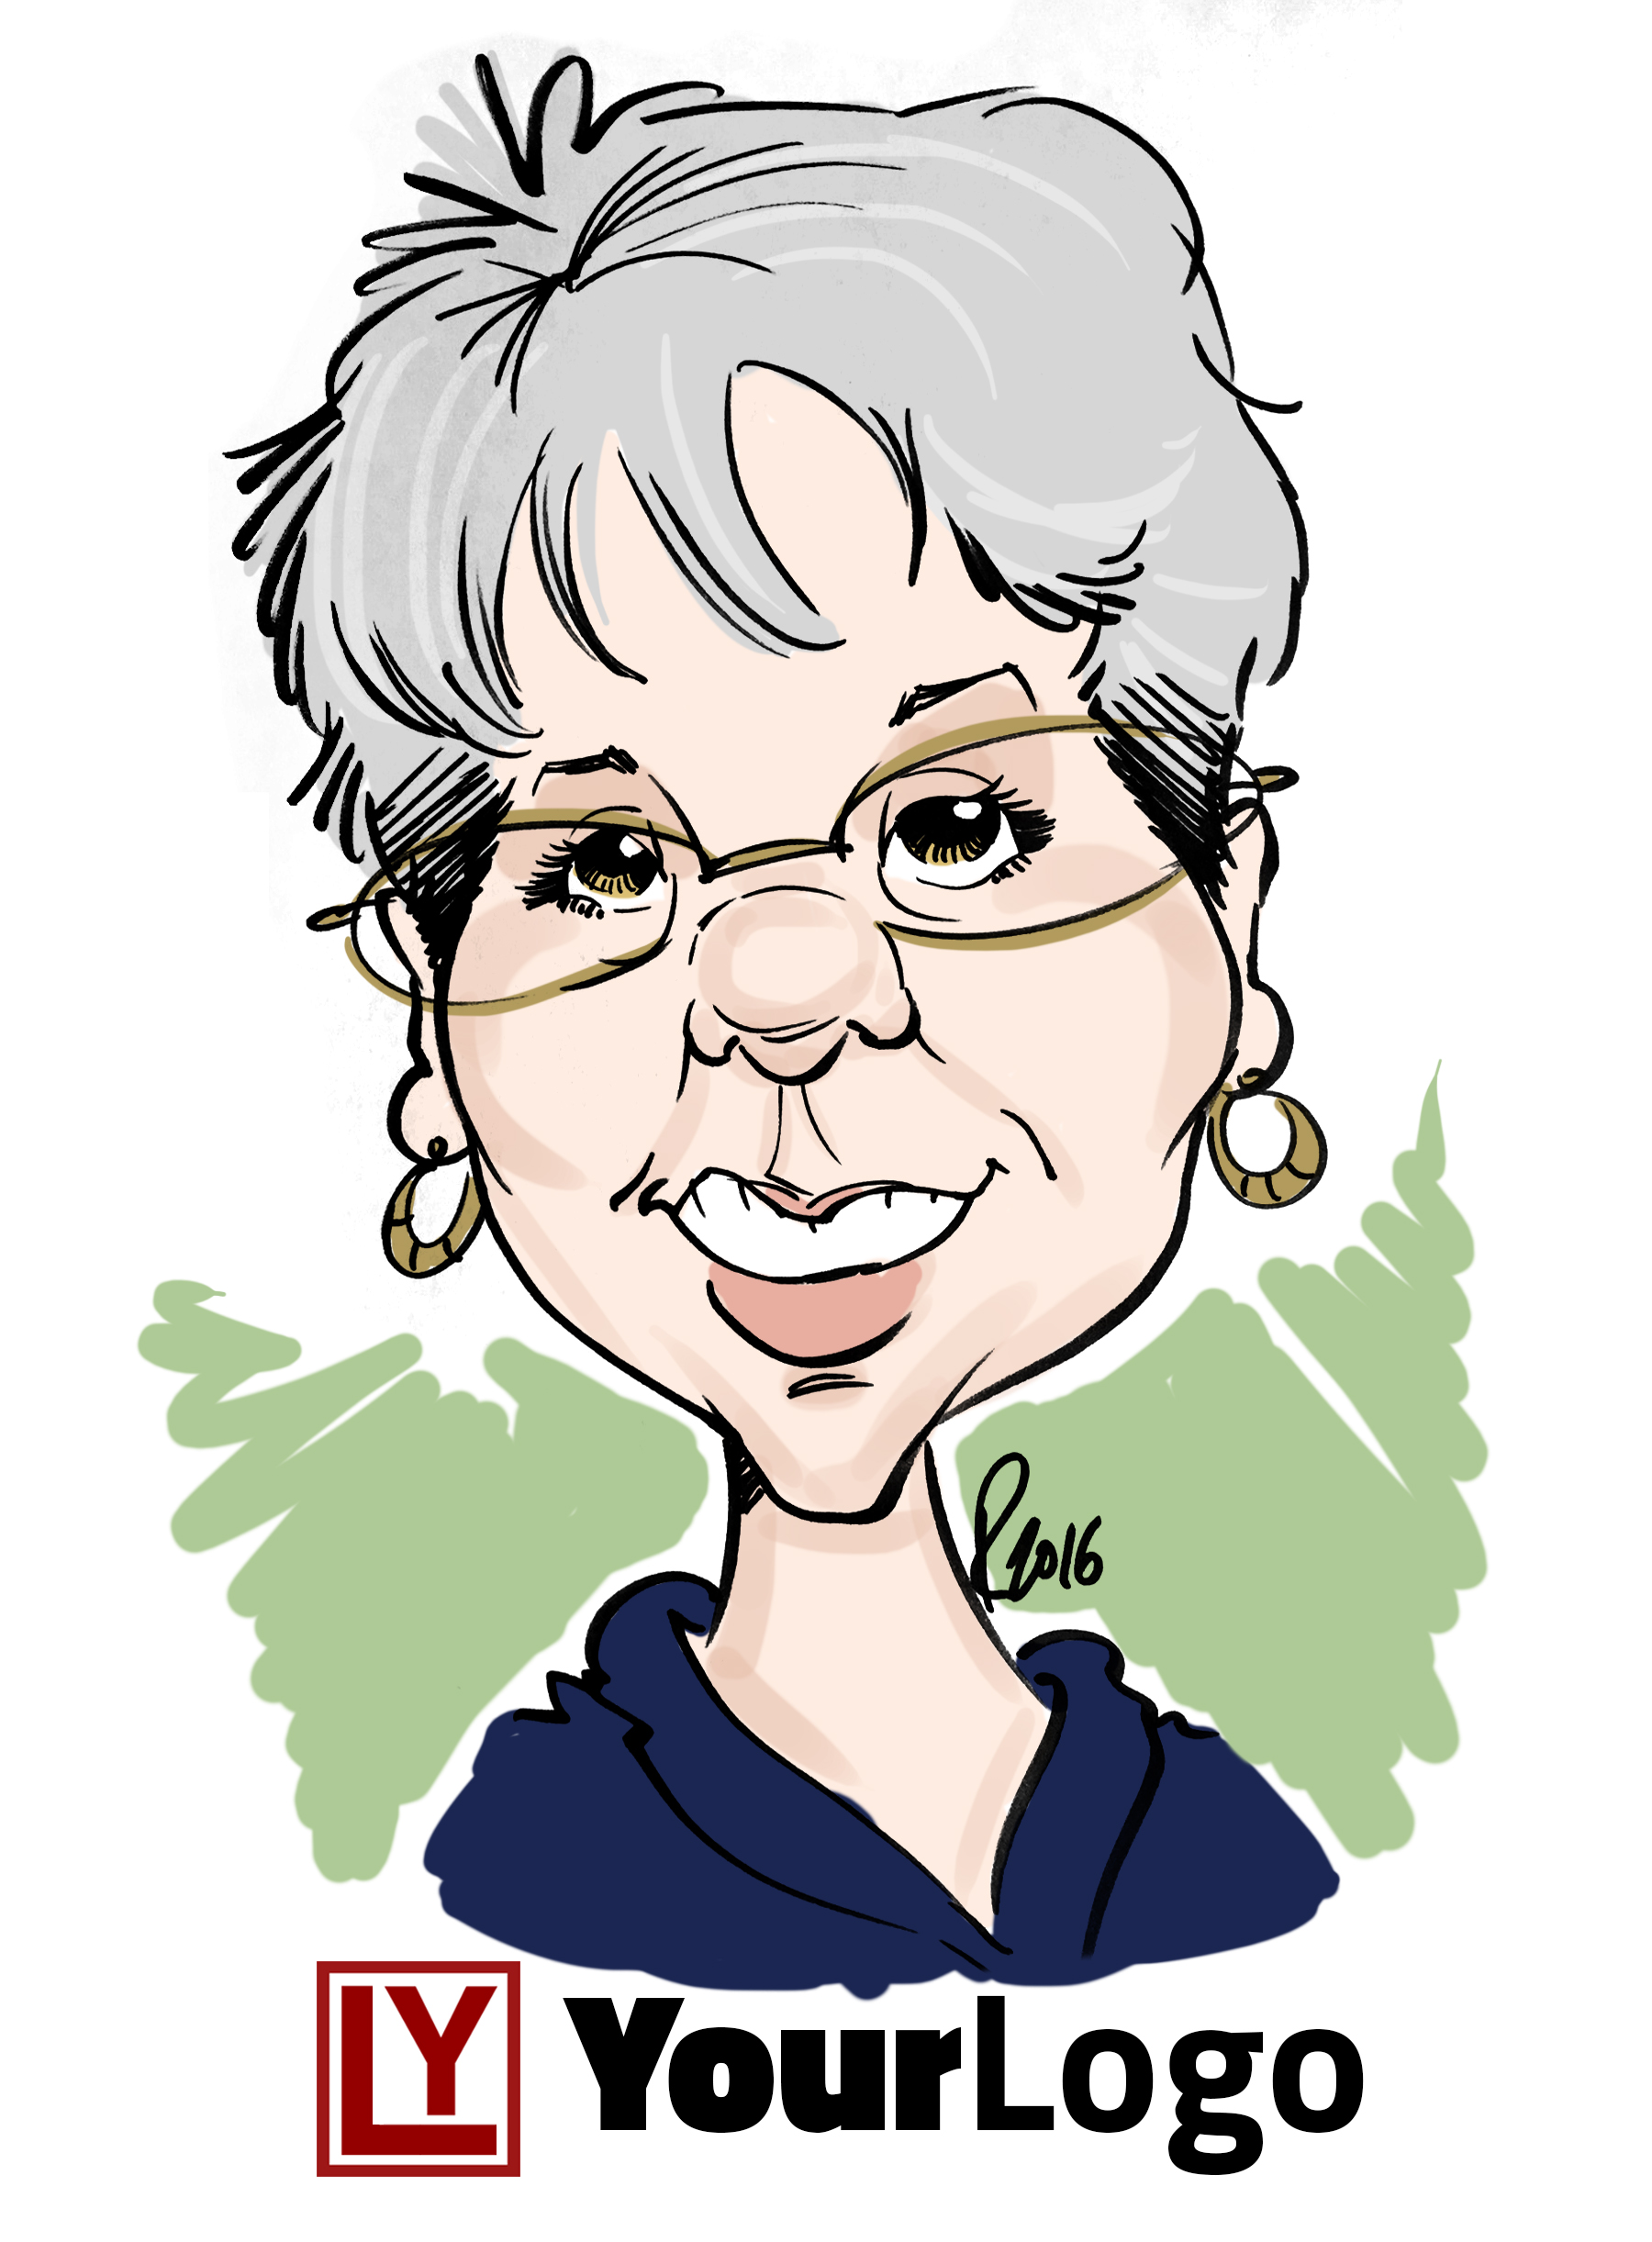 DigitalCaricatureSample4.jpg